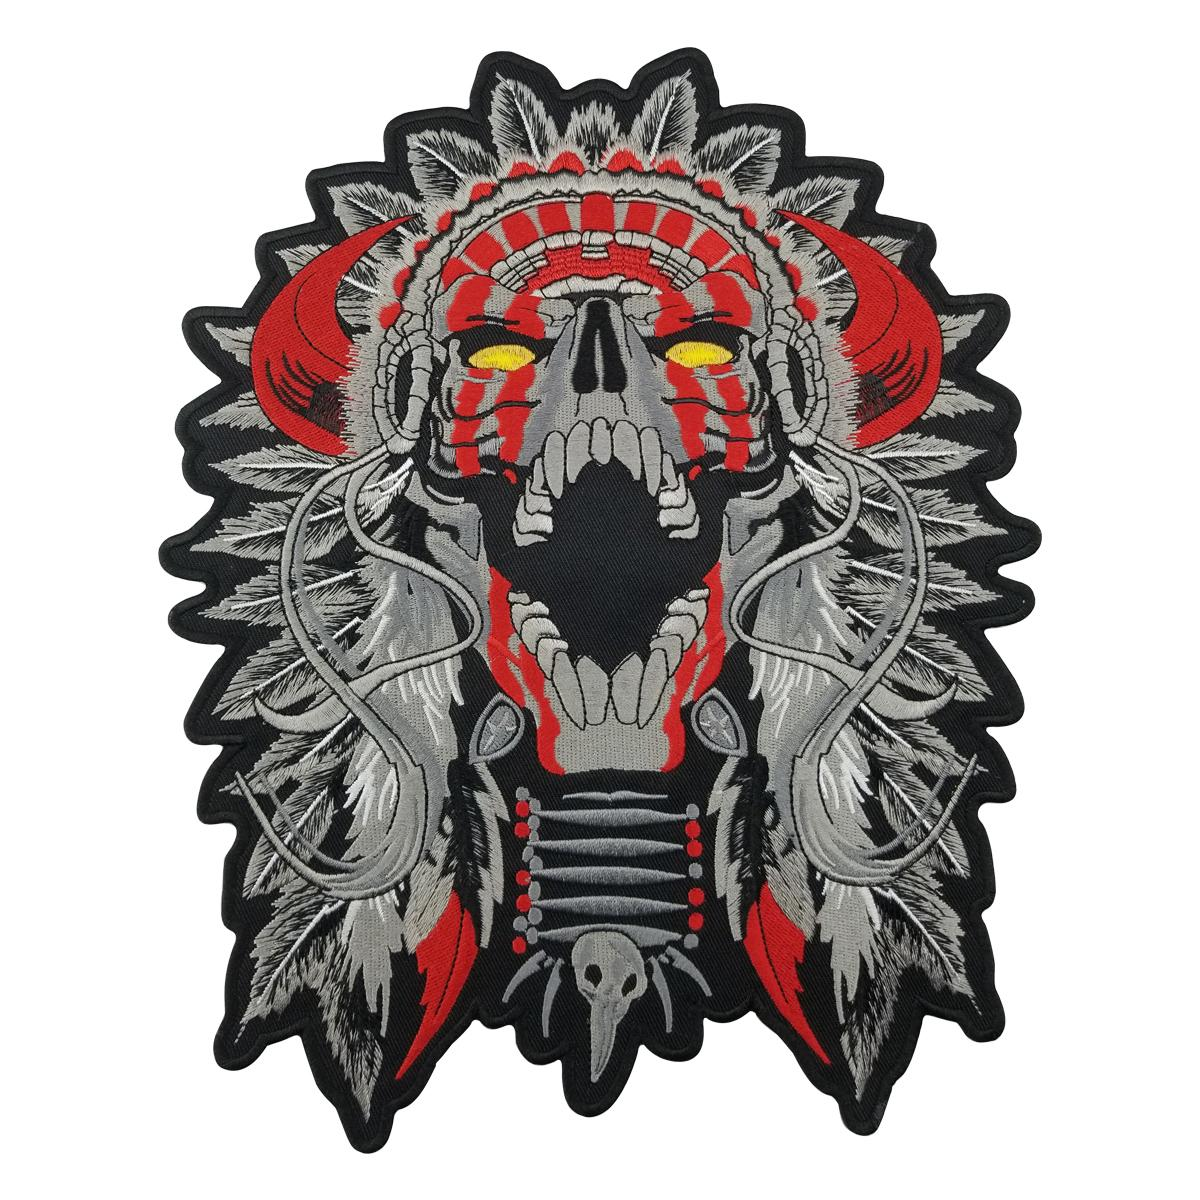 "Free Shipping LARGE HORNED CHIEF DEATH SKULL INDIAN MOTORCYCLE BIKER BACK PATCH 11"" MC RIDER Vest Patch"